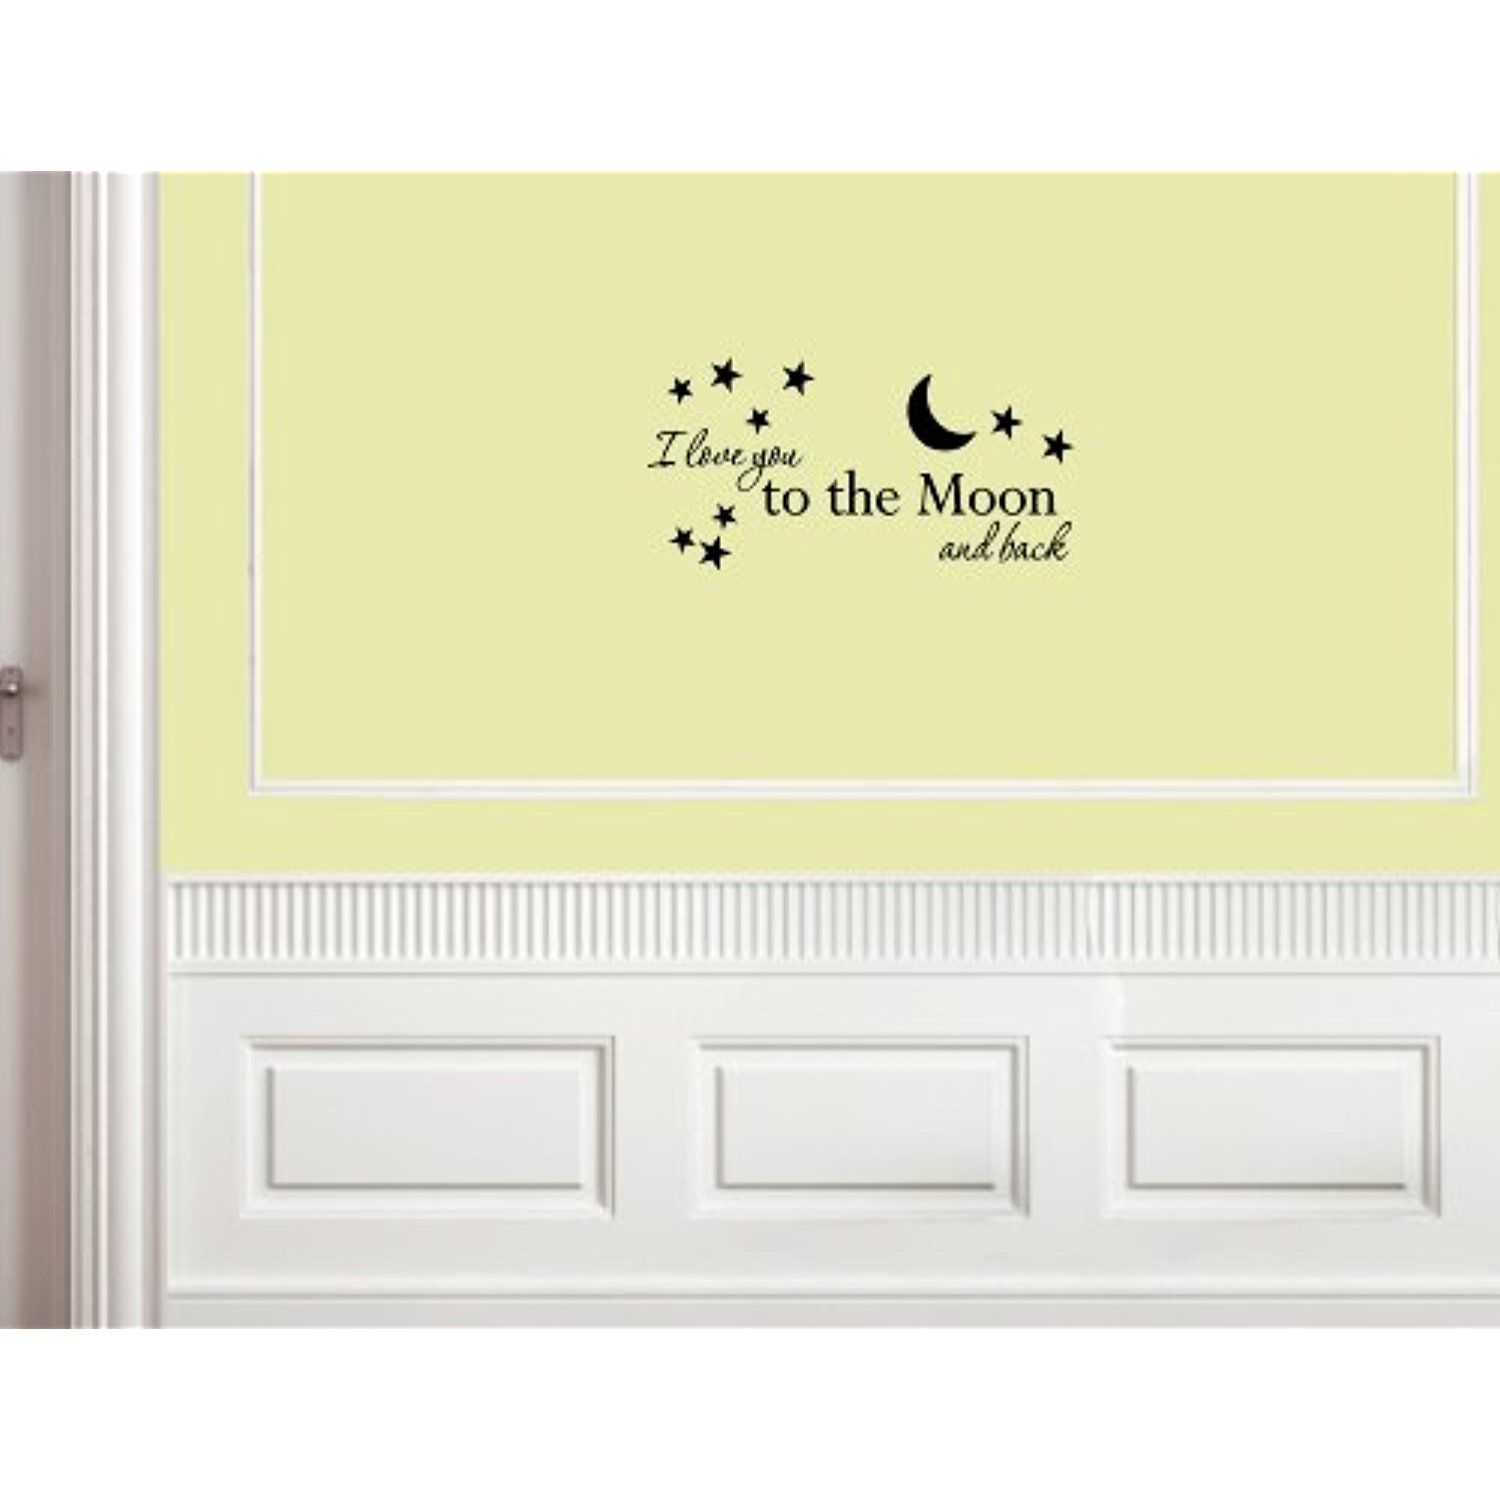 I love you to the moon and back - Vinyl wall decals quotes sayings ...